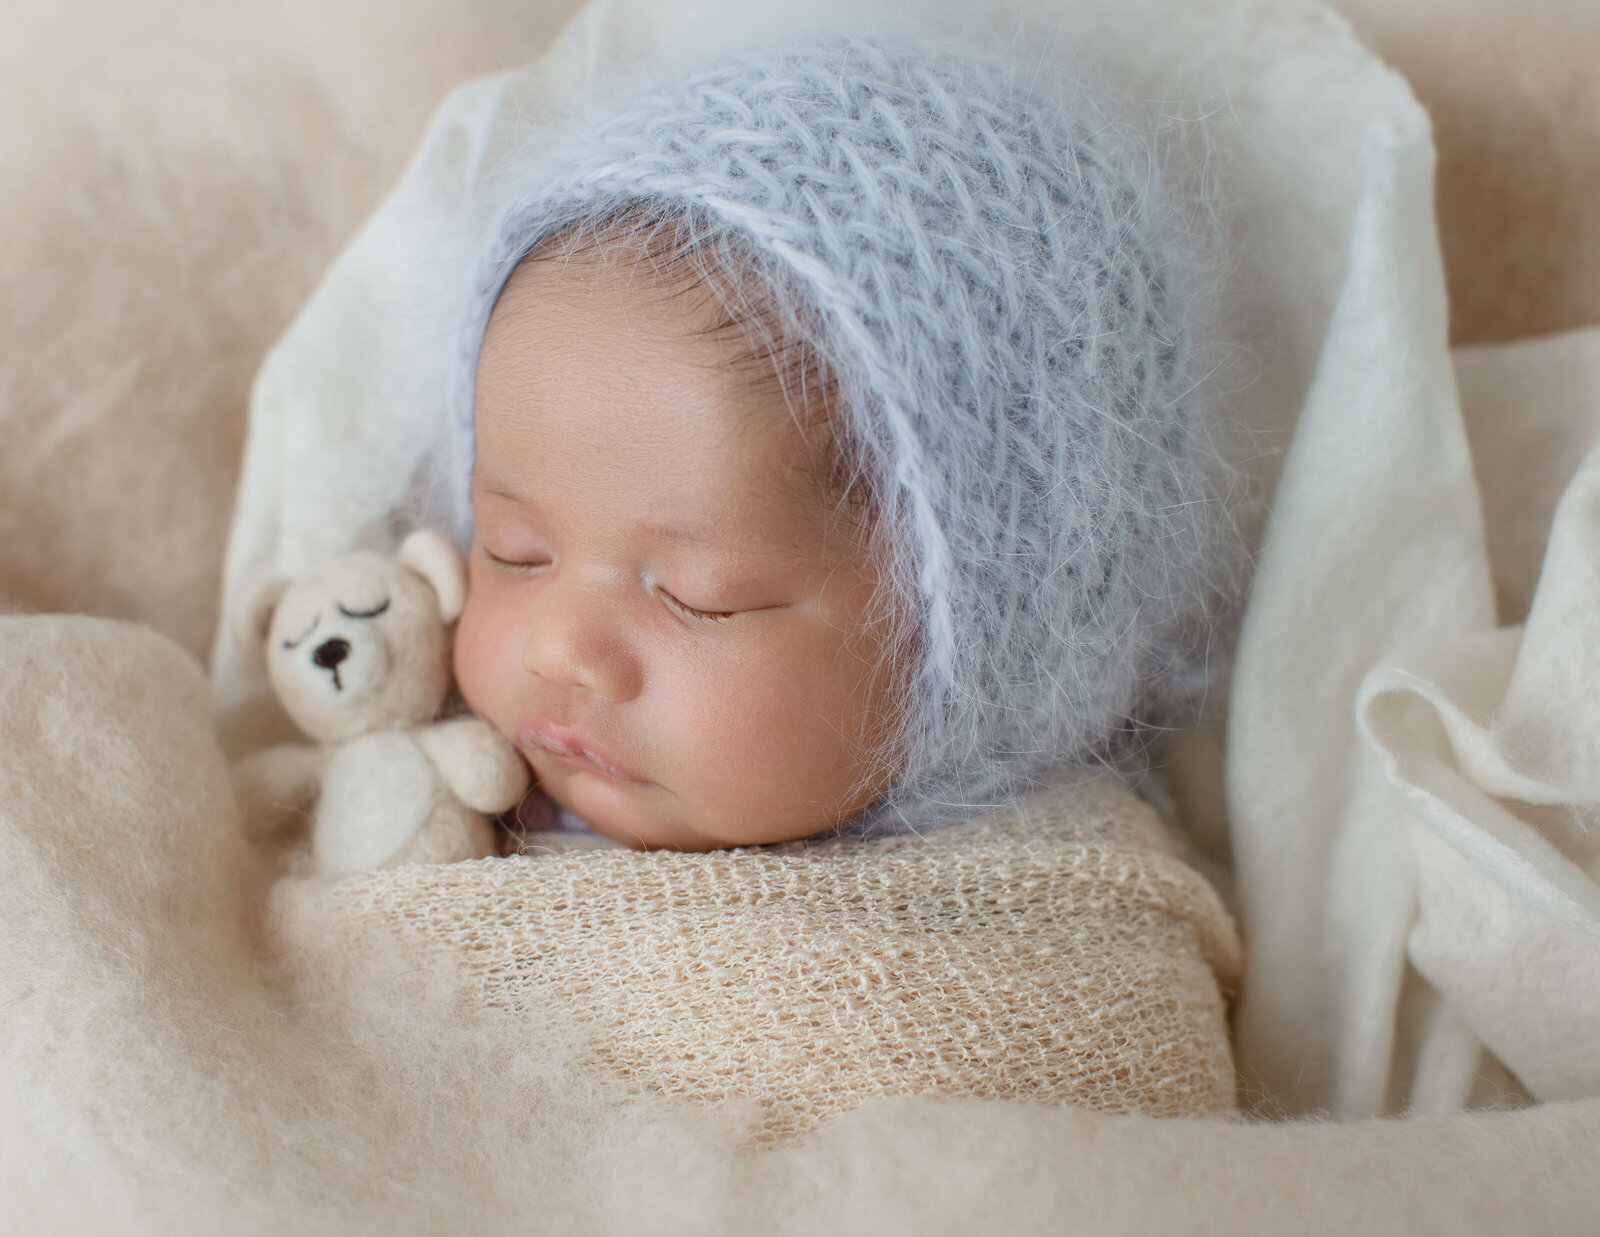 Babsie-Baby-Photography-Top-Newborn-Photographer-in-San-Diego-North-County-Oceanside-Baby-Boy-Nicolas-2019